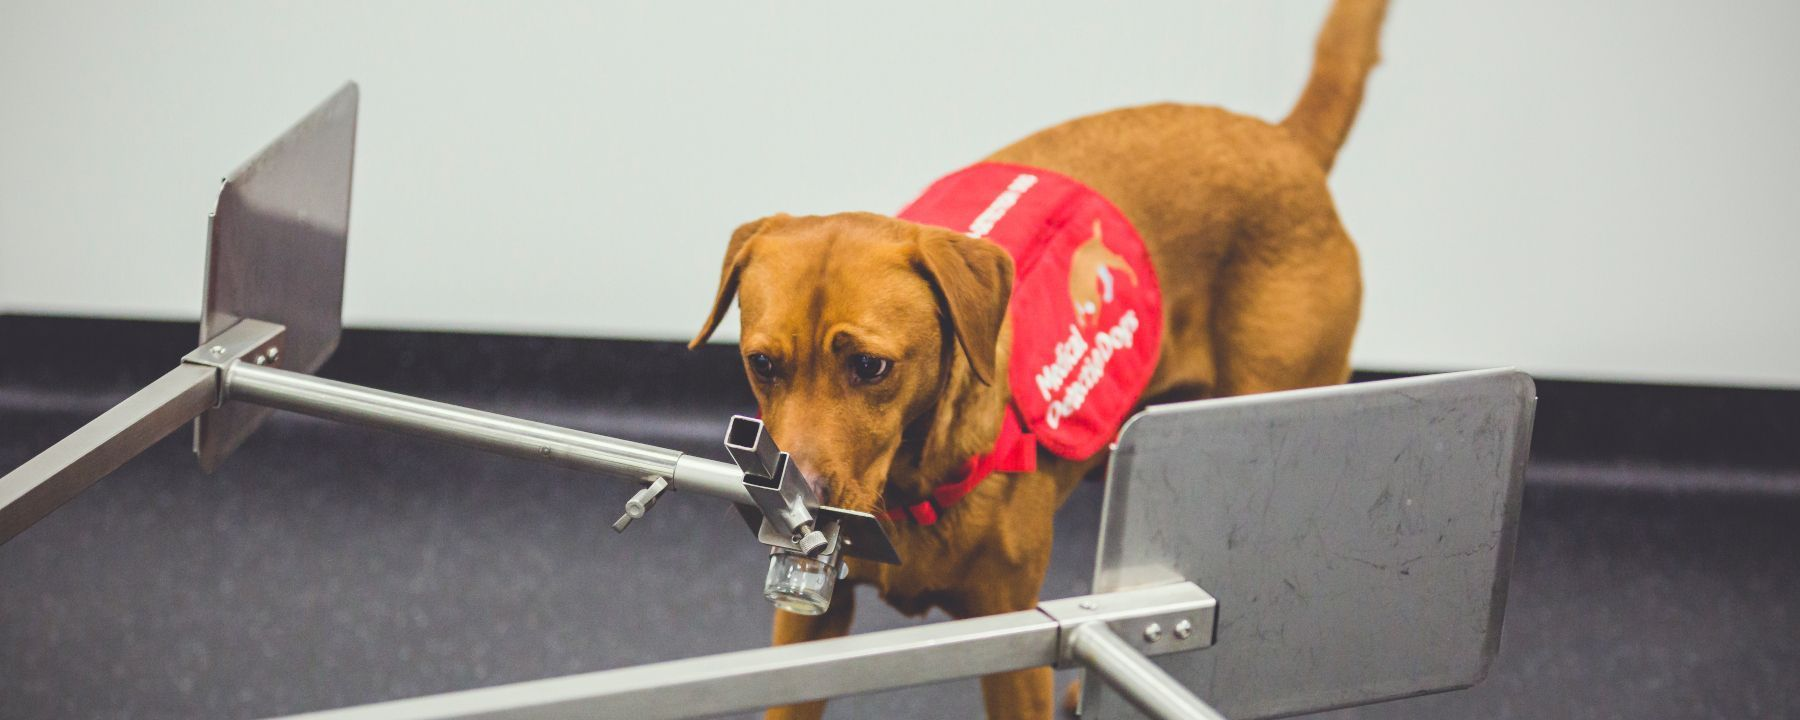 Watch a Trained Pup Detect Prostate Cancer From a Urine Sample